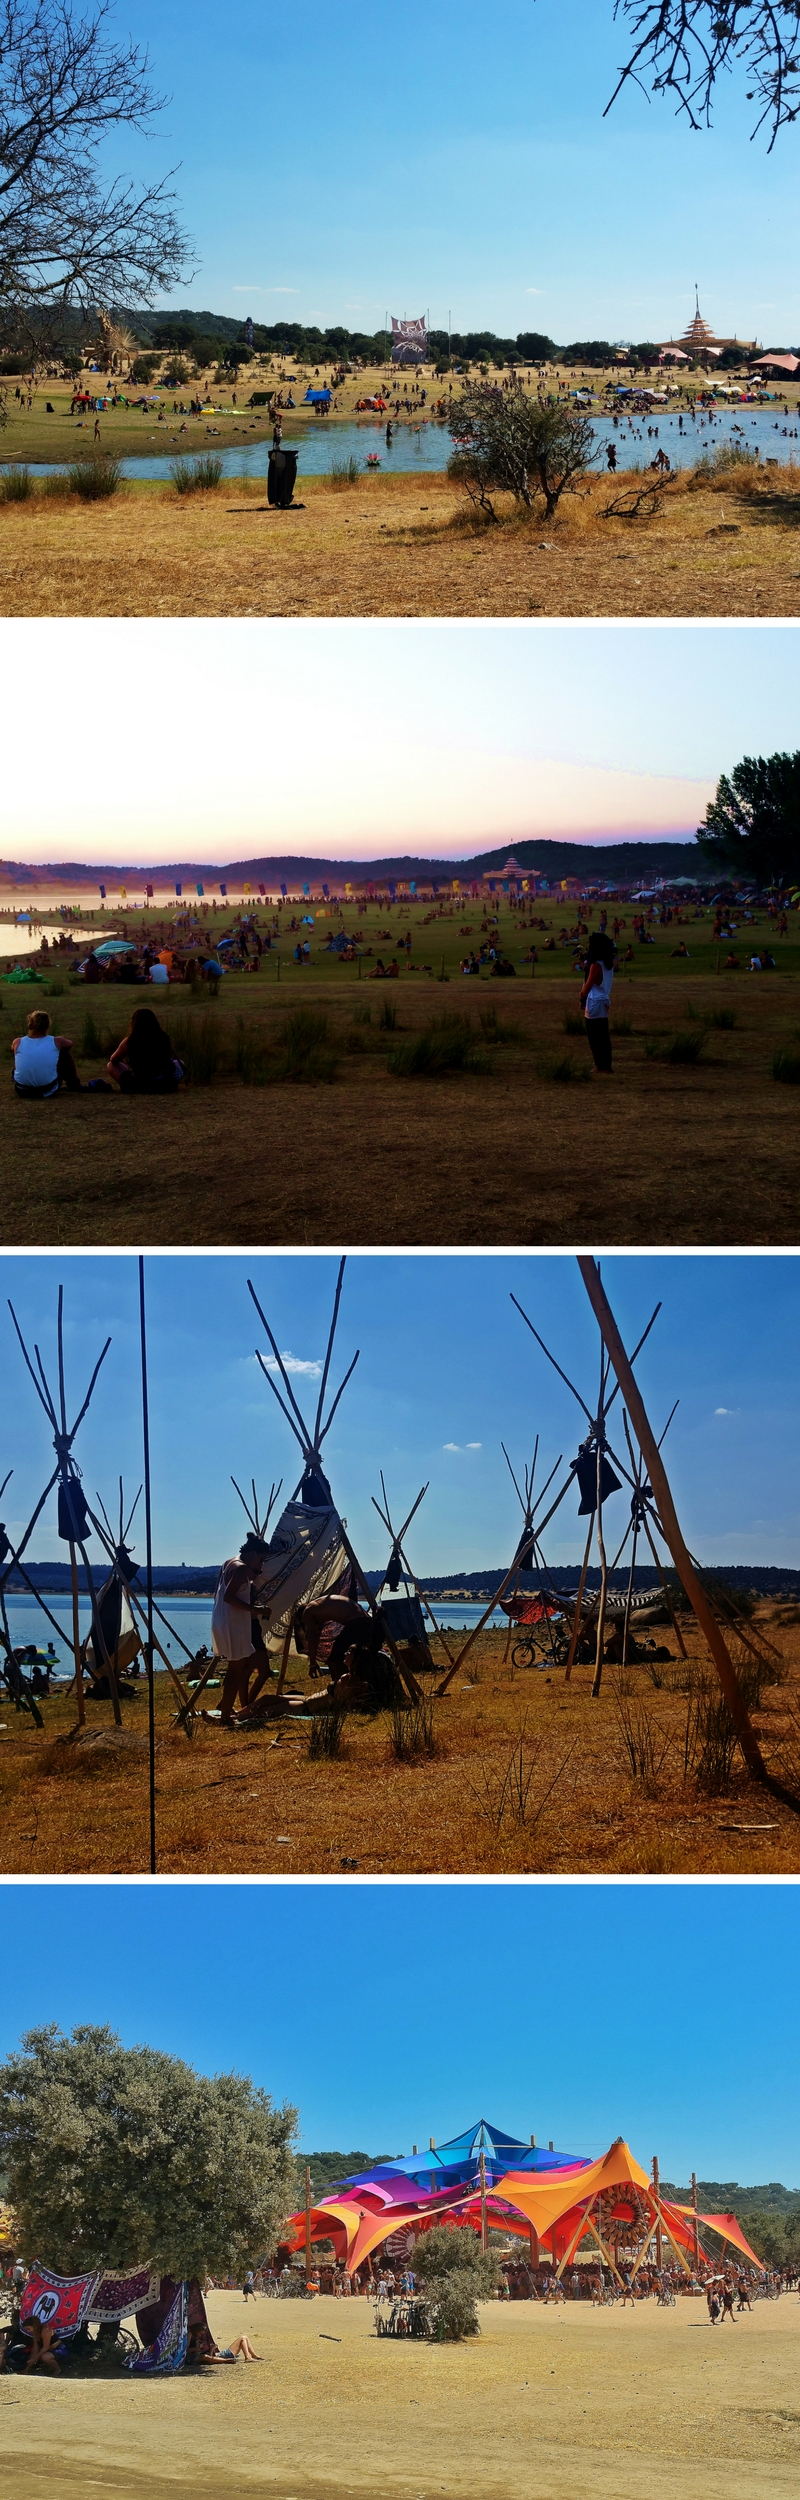 The beautiful setting of Boom Festival 2016, with Lake Idanha-a-Nov as its backdrop